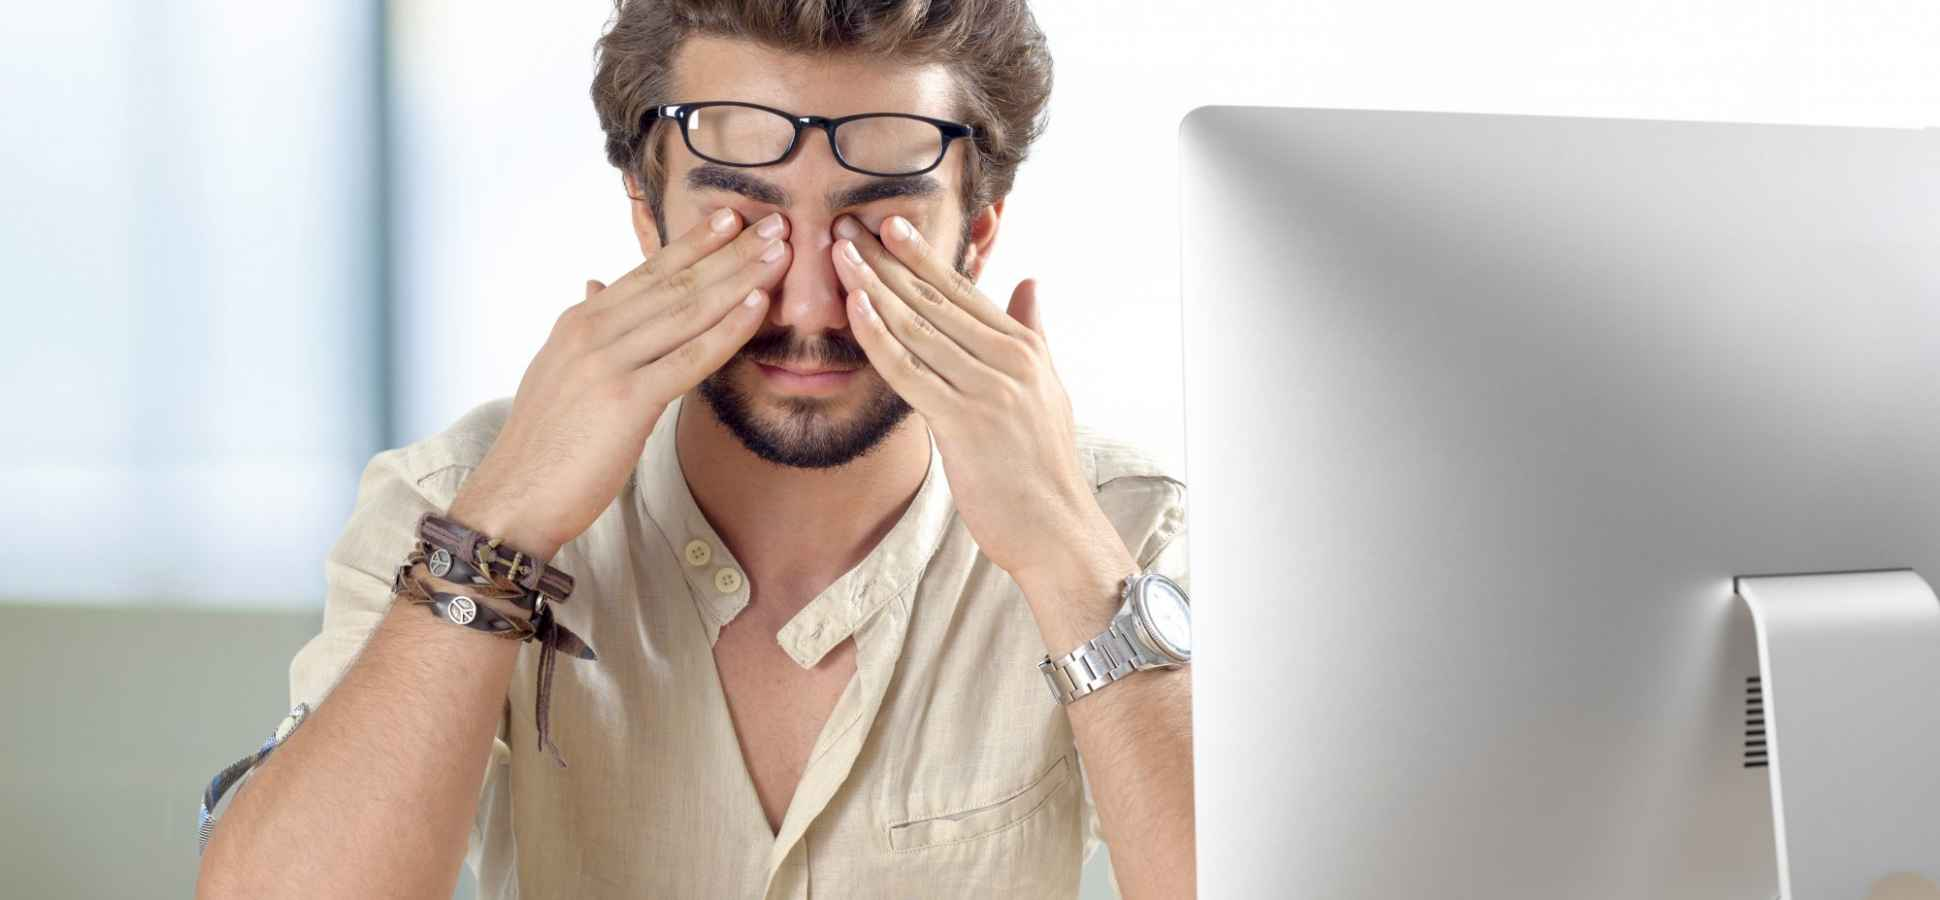 4 Ways to Protect Your Eyes If You Stare at Screens All Day